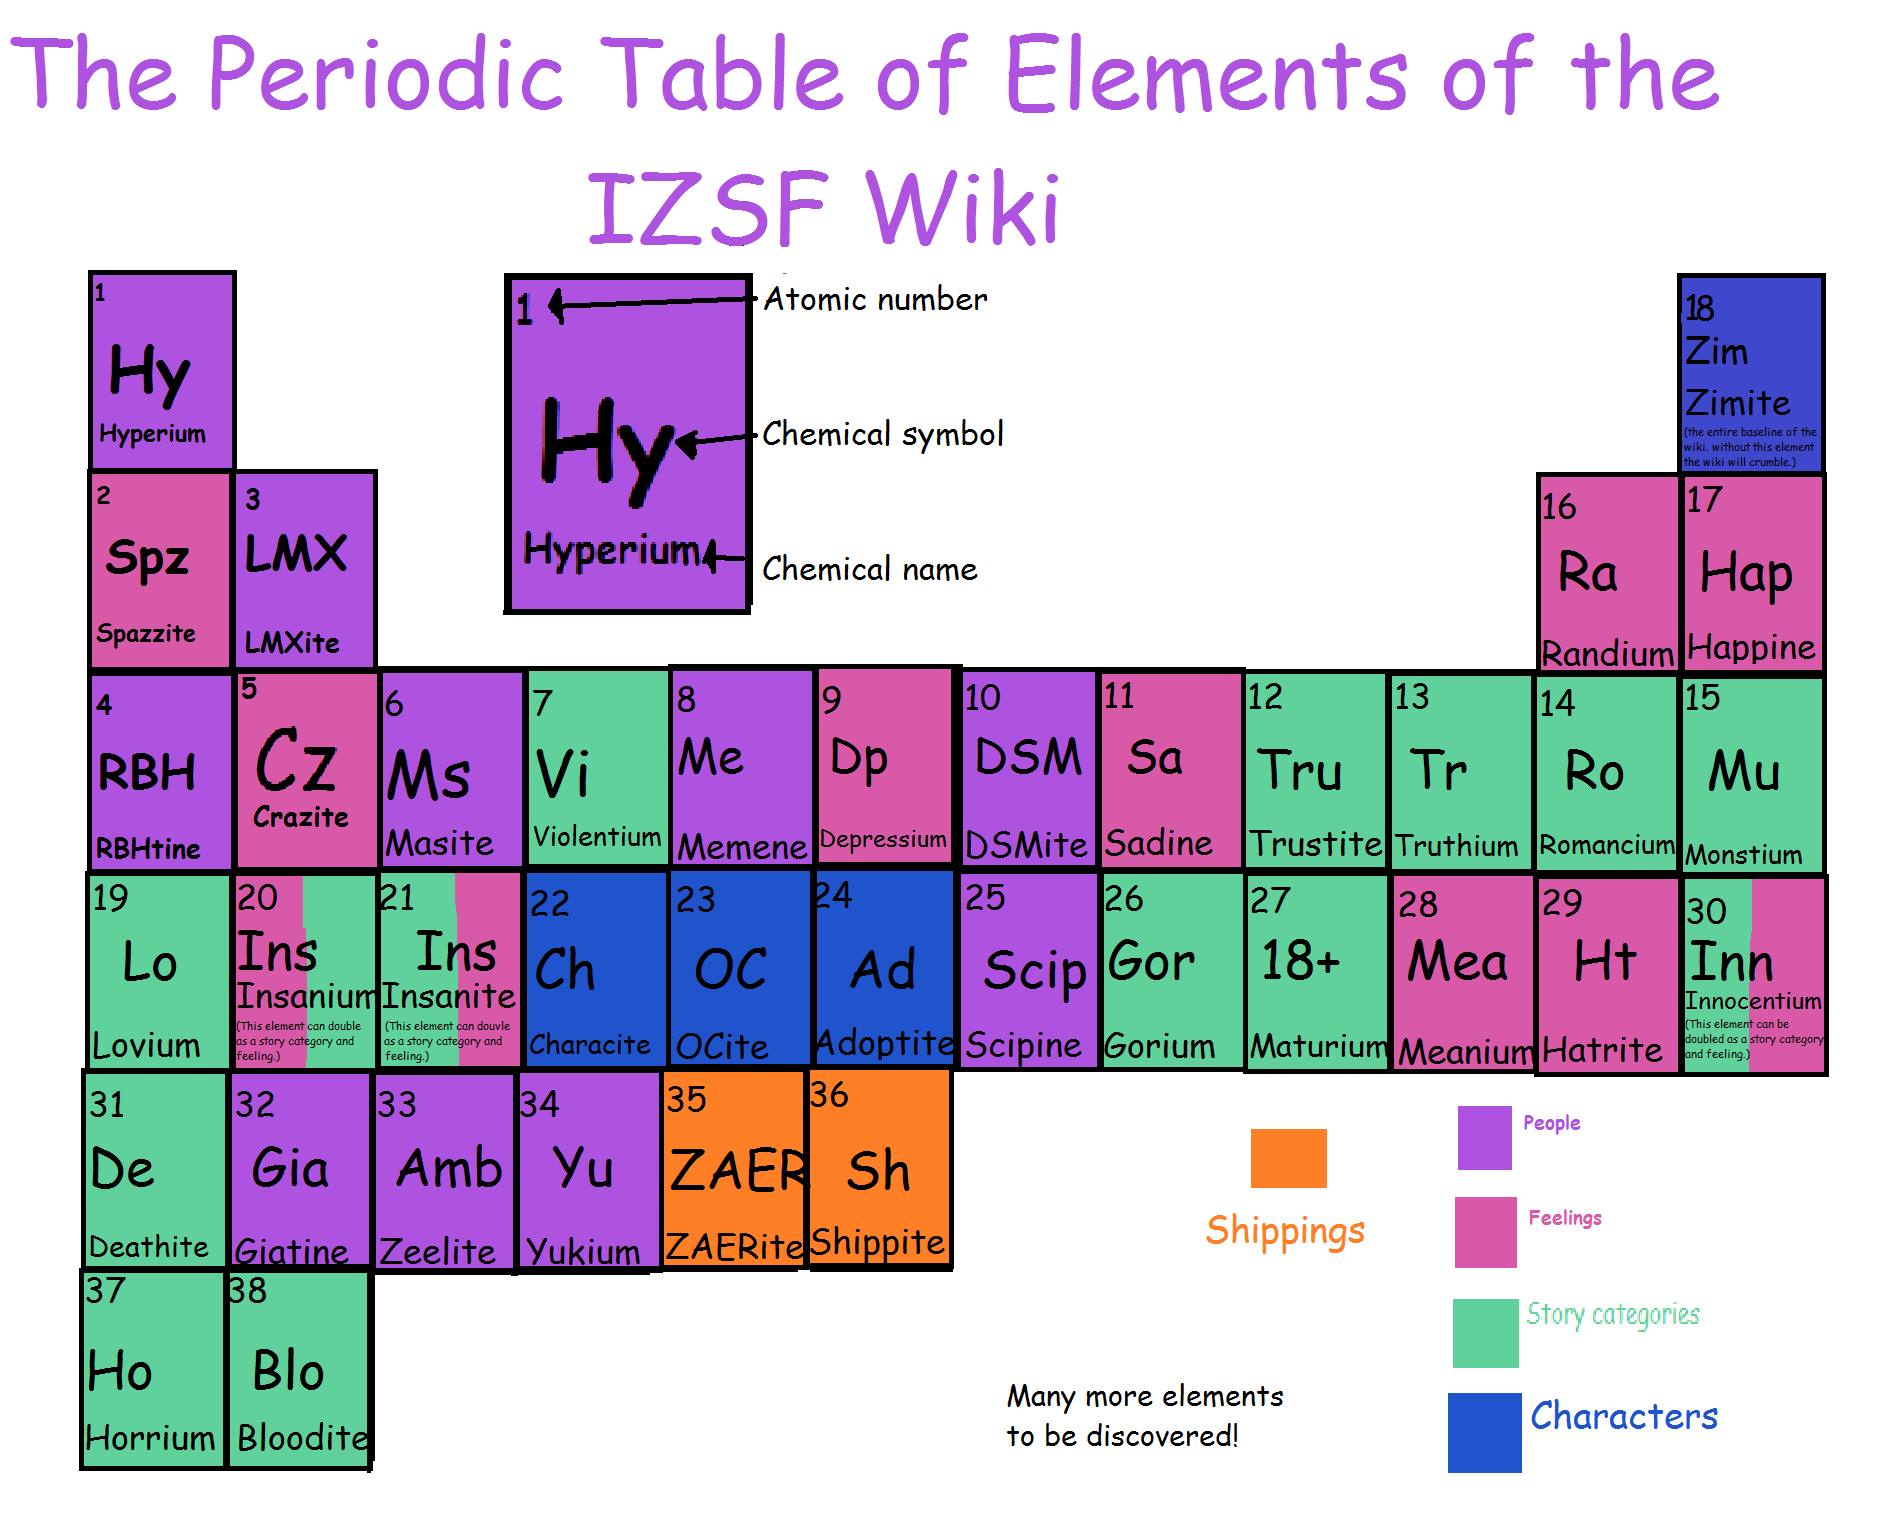 Image riodic table of elements of the izsf wikig periodic table of elements of the izsf wikig urtaz Gallery